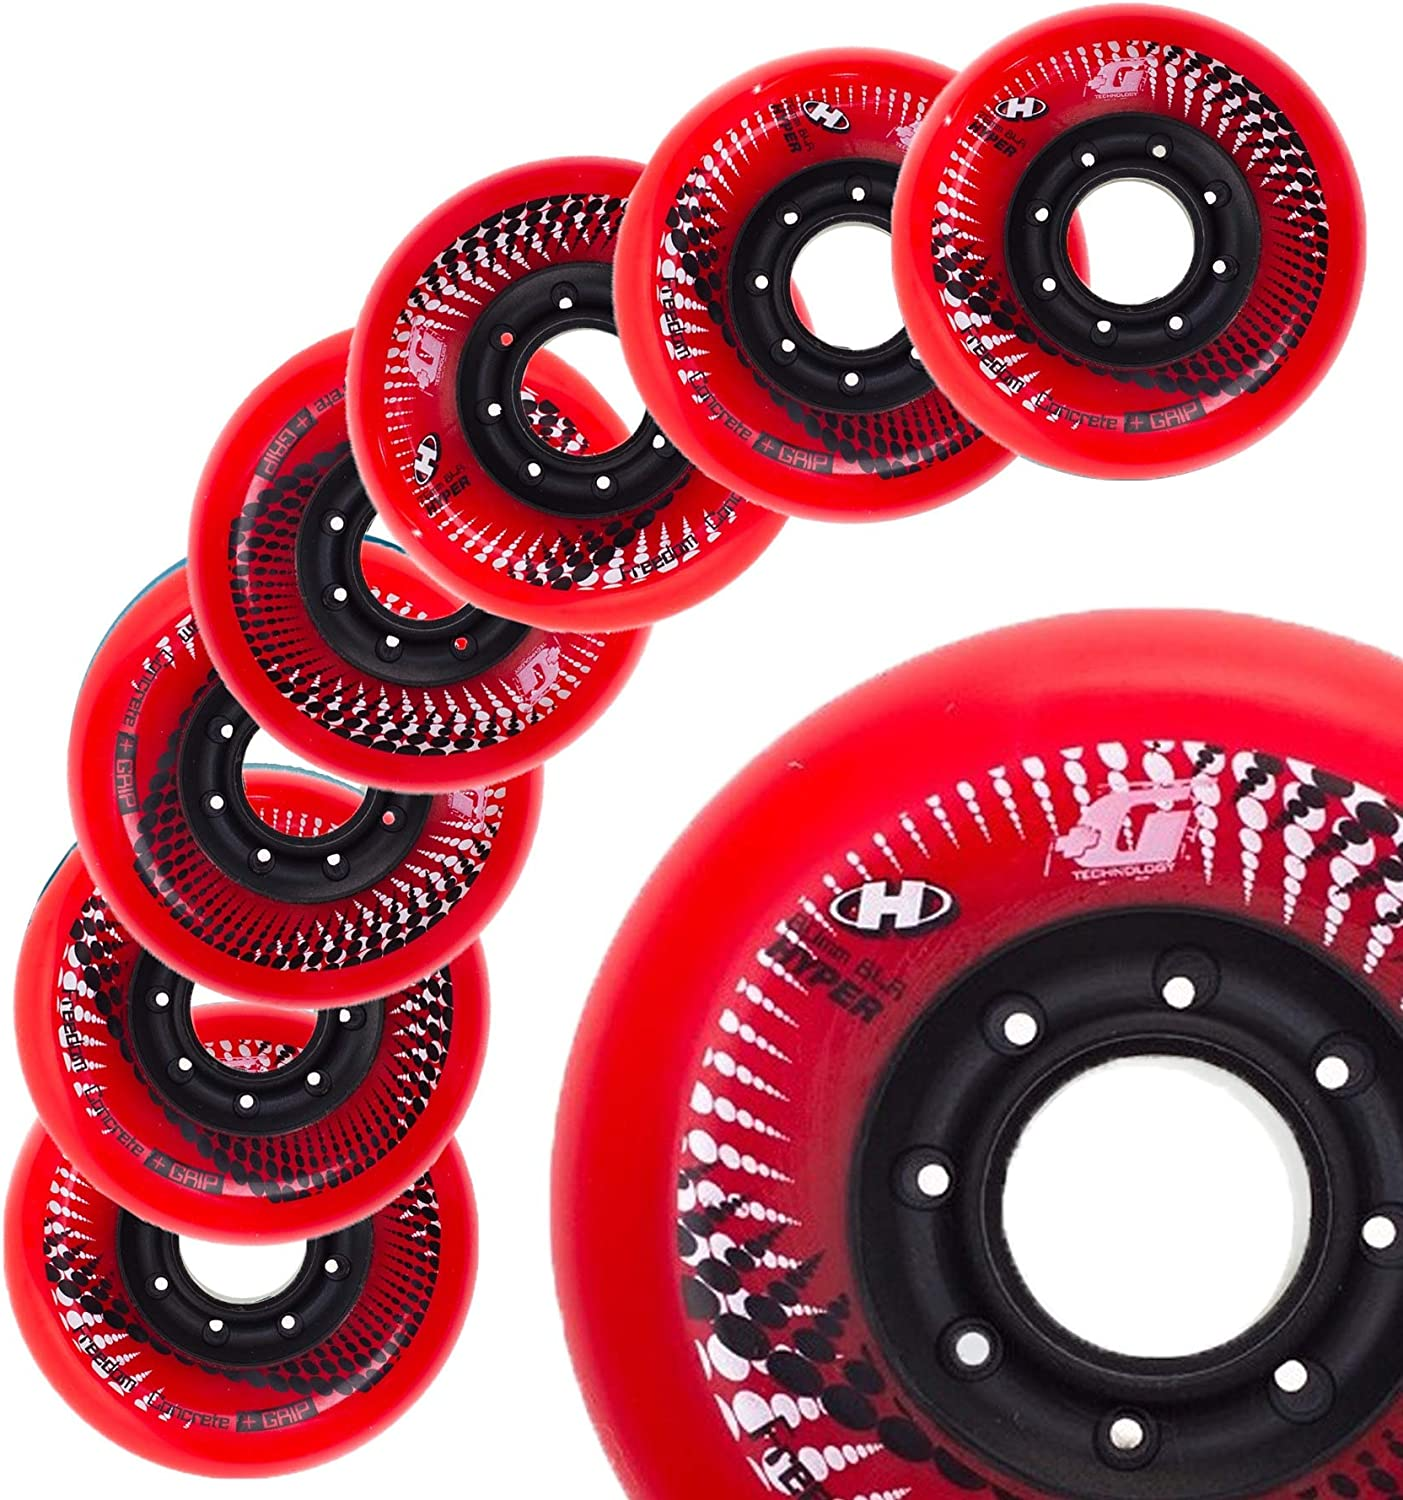 N1 Inline Skate Wheels in The World 84A for Fitness Slalom 80MM Sizes 72MM 76MM Hyper Wheels Concrete +G 8 Wheels Freeride Urban